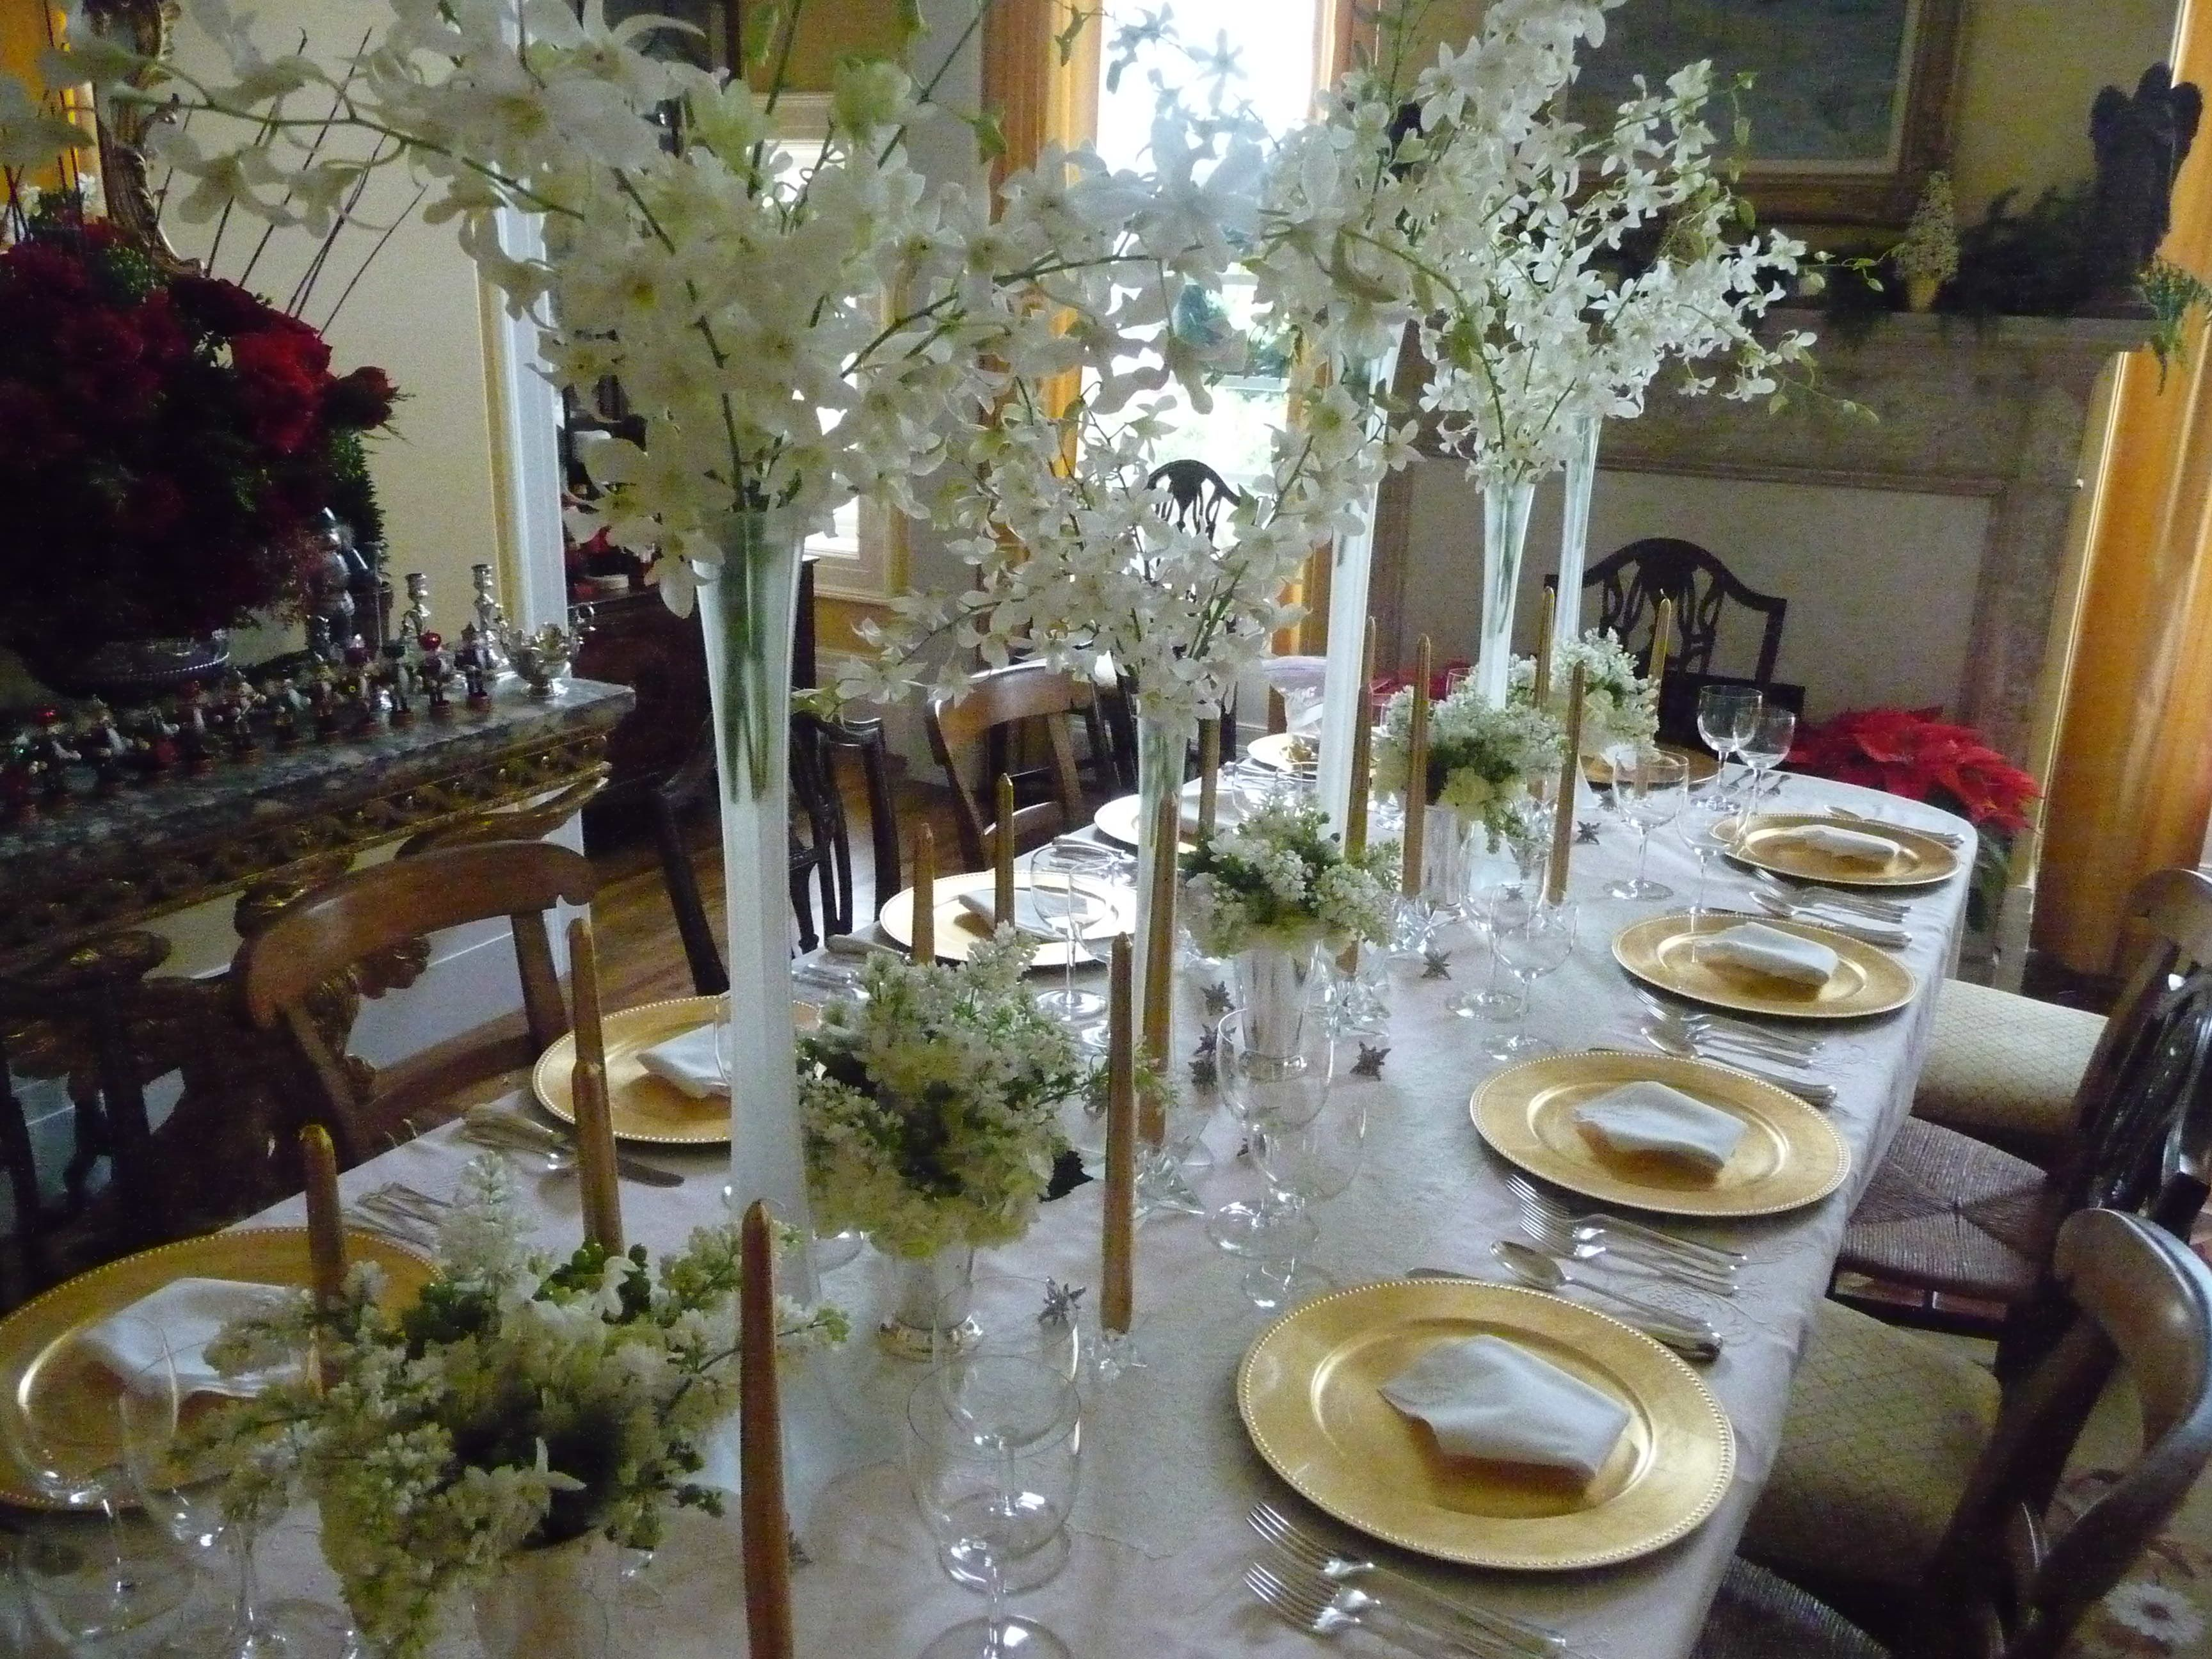 Exquisite White Christmas Dinner Table Decorations Boasts Beauteous White  Lilies Christmas On Crystal Vase Centerpieces With Alluring White Christmas  Dining ...